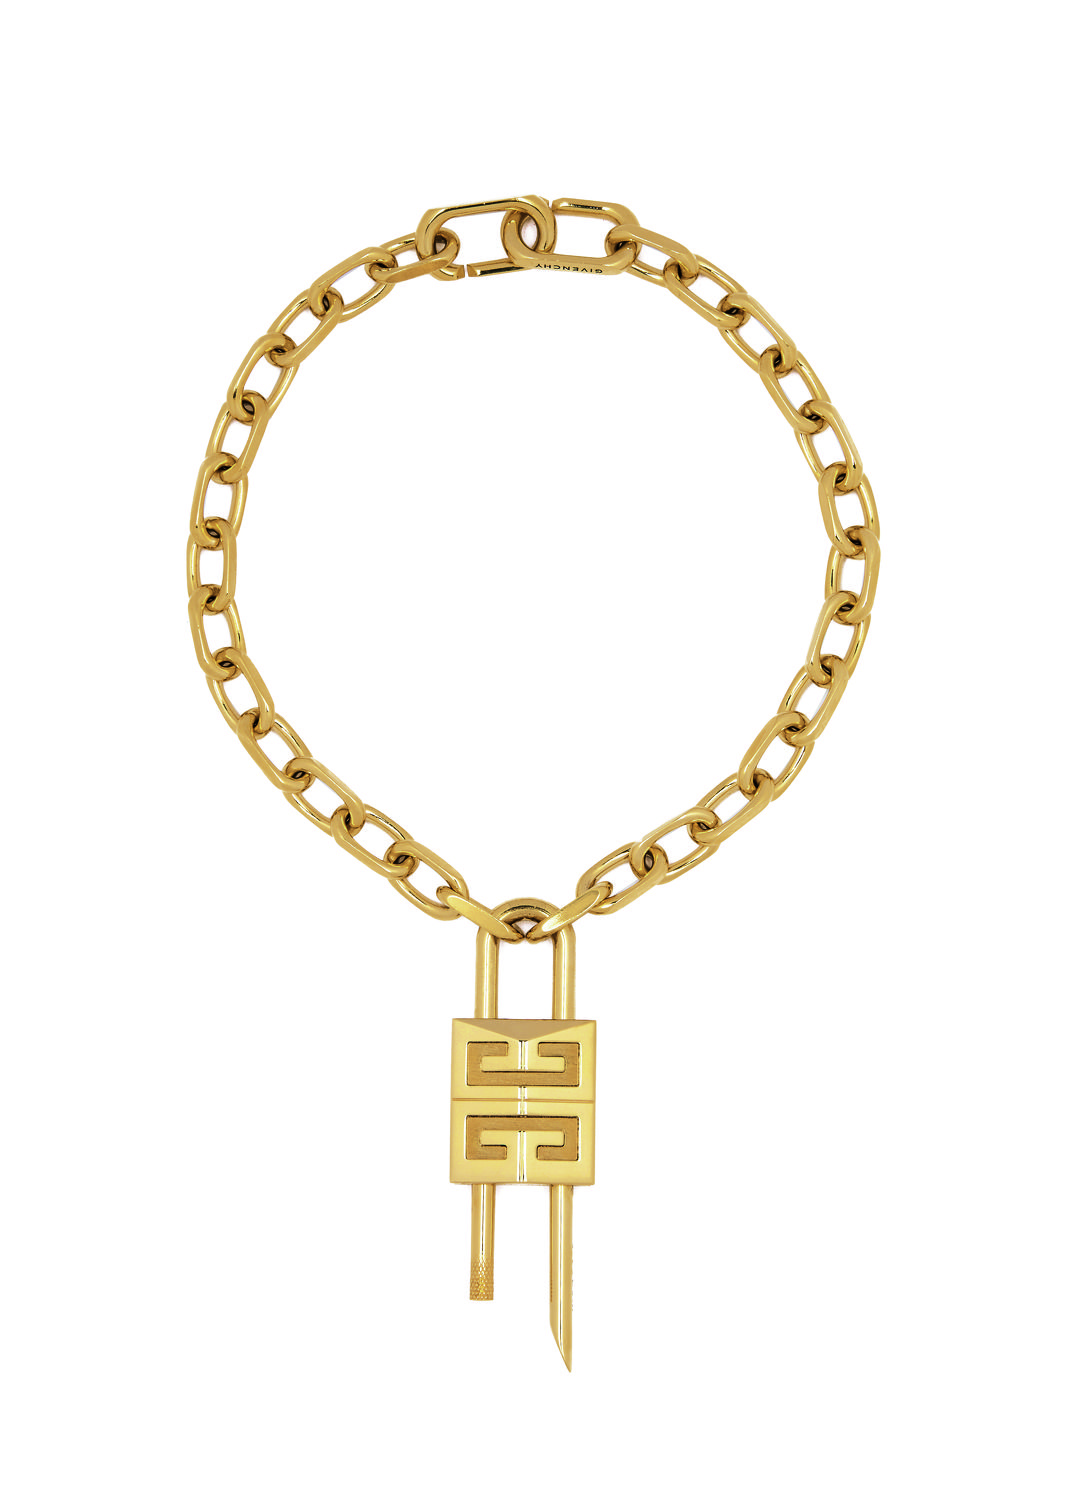 4G Lock necklace in gold metal finish - THE EDGE SINGAPORE